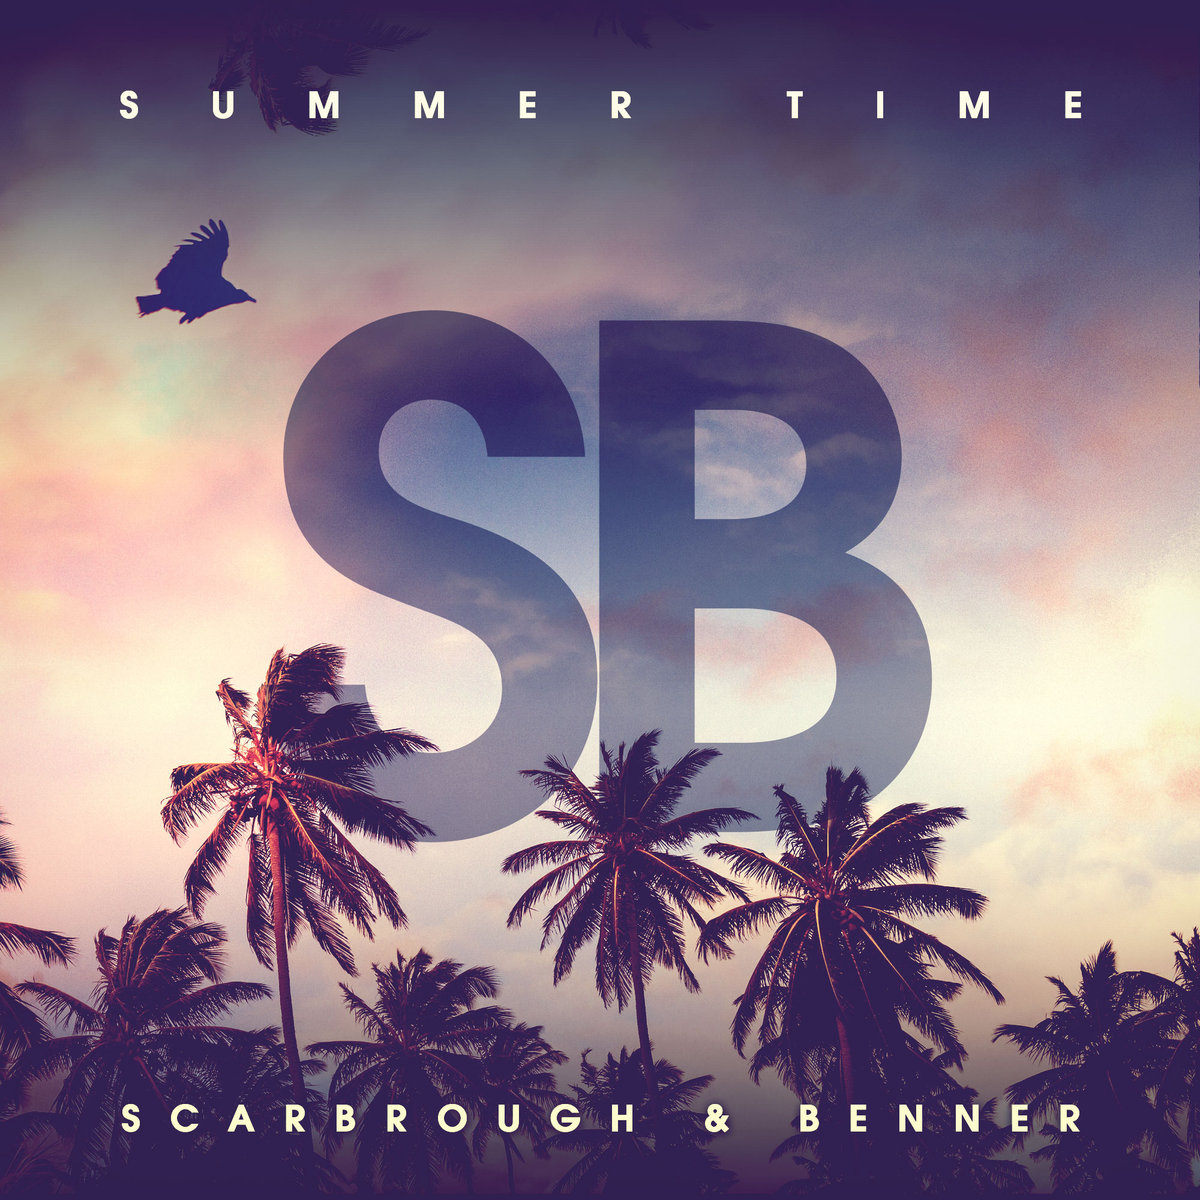 Scarbrough & Benner feat. Boom Sumting! Sound System - Come Out and Play @ 'Summertime' album (little dragon, thievery corporation)